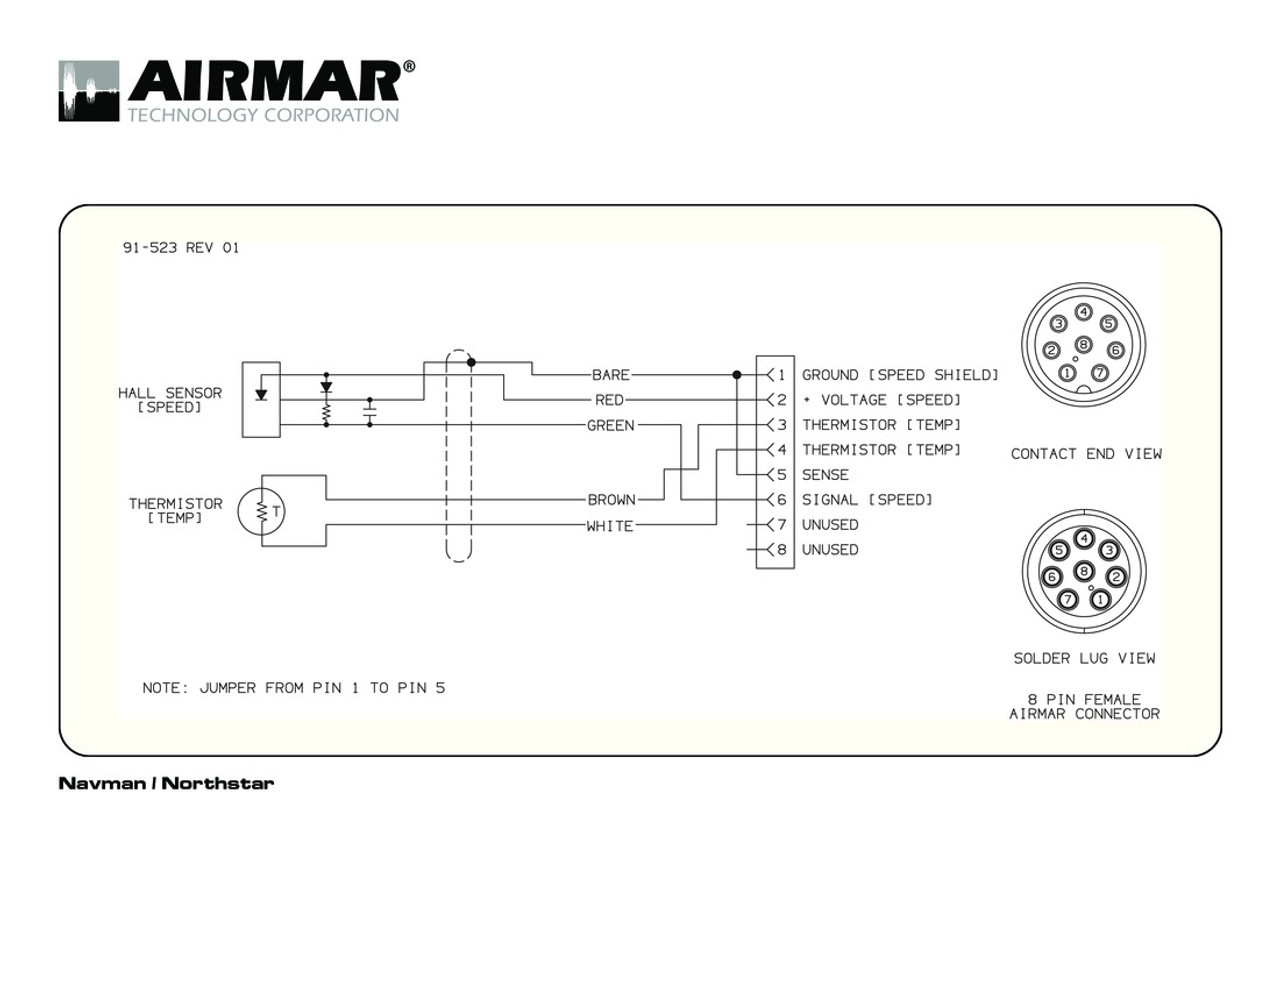 medium resolution of northstar wiring diagram wiring diagram g8 baja wiring diagram airmar wiring diagram navman northstar blue